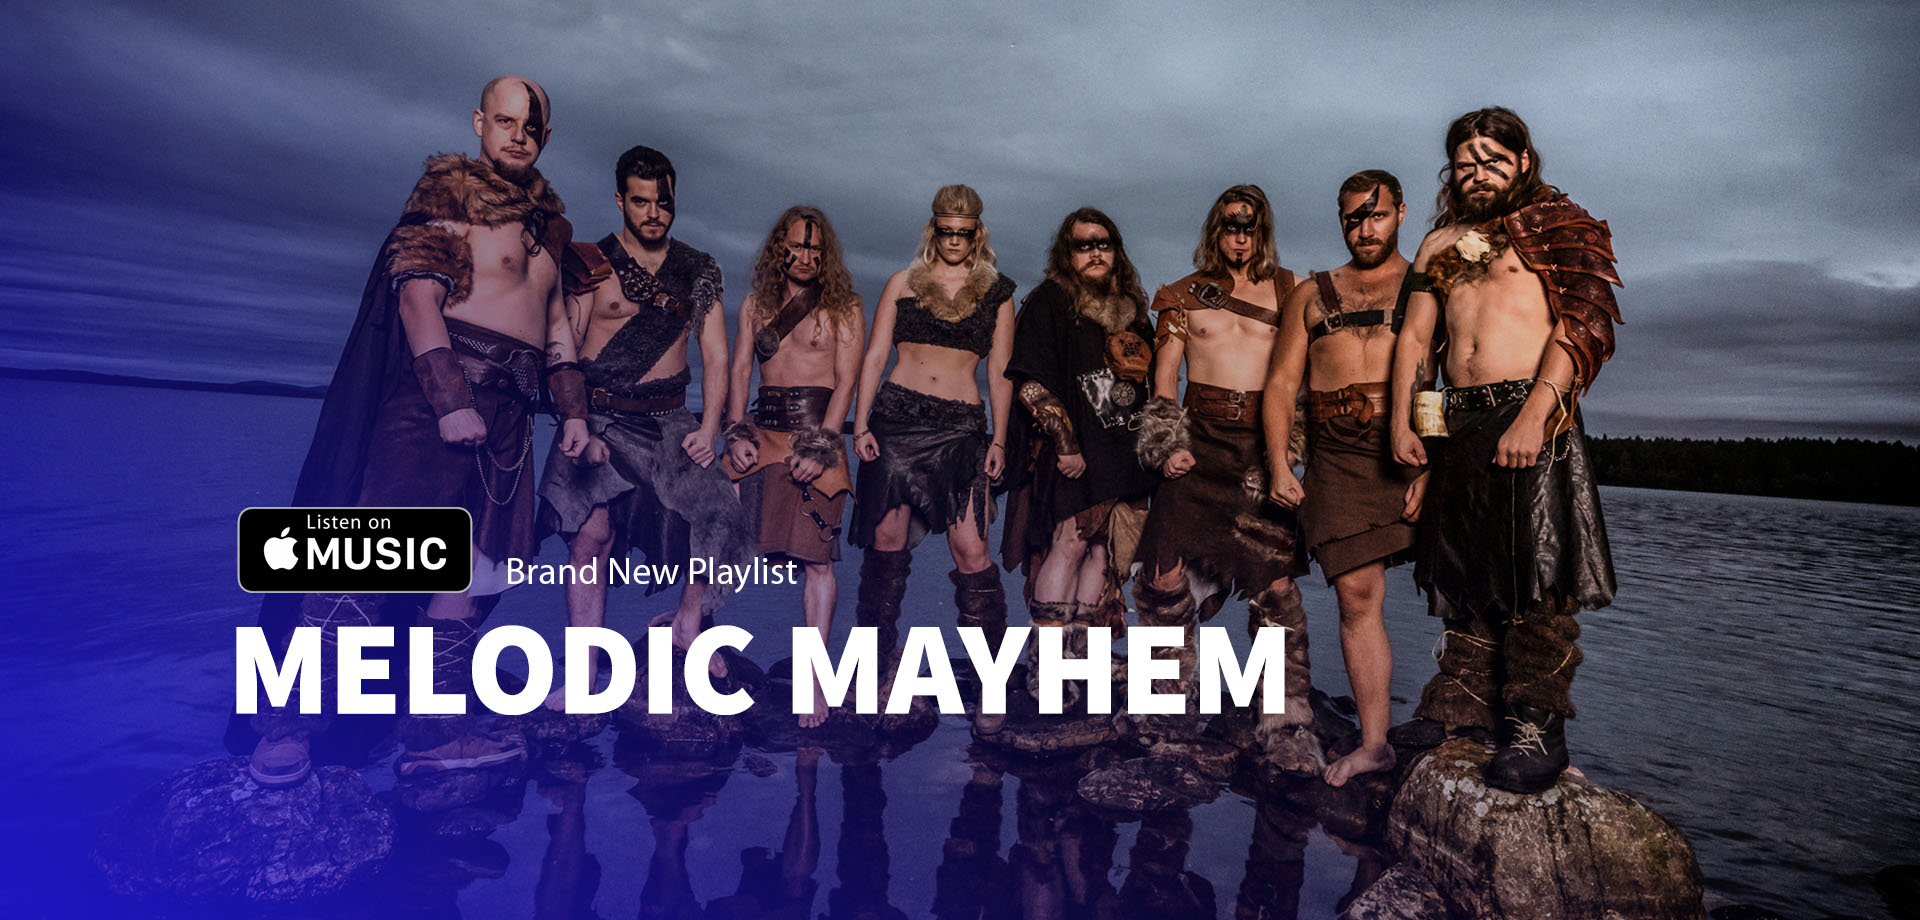 MELODIC MAYHEM - Brand new Apple Music playlist for Epic and Melodic Power Metal